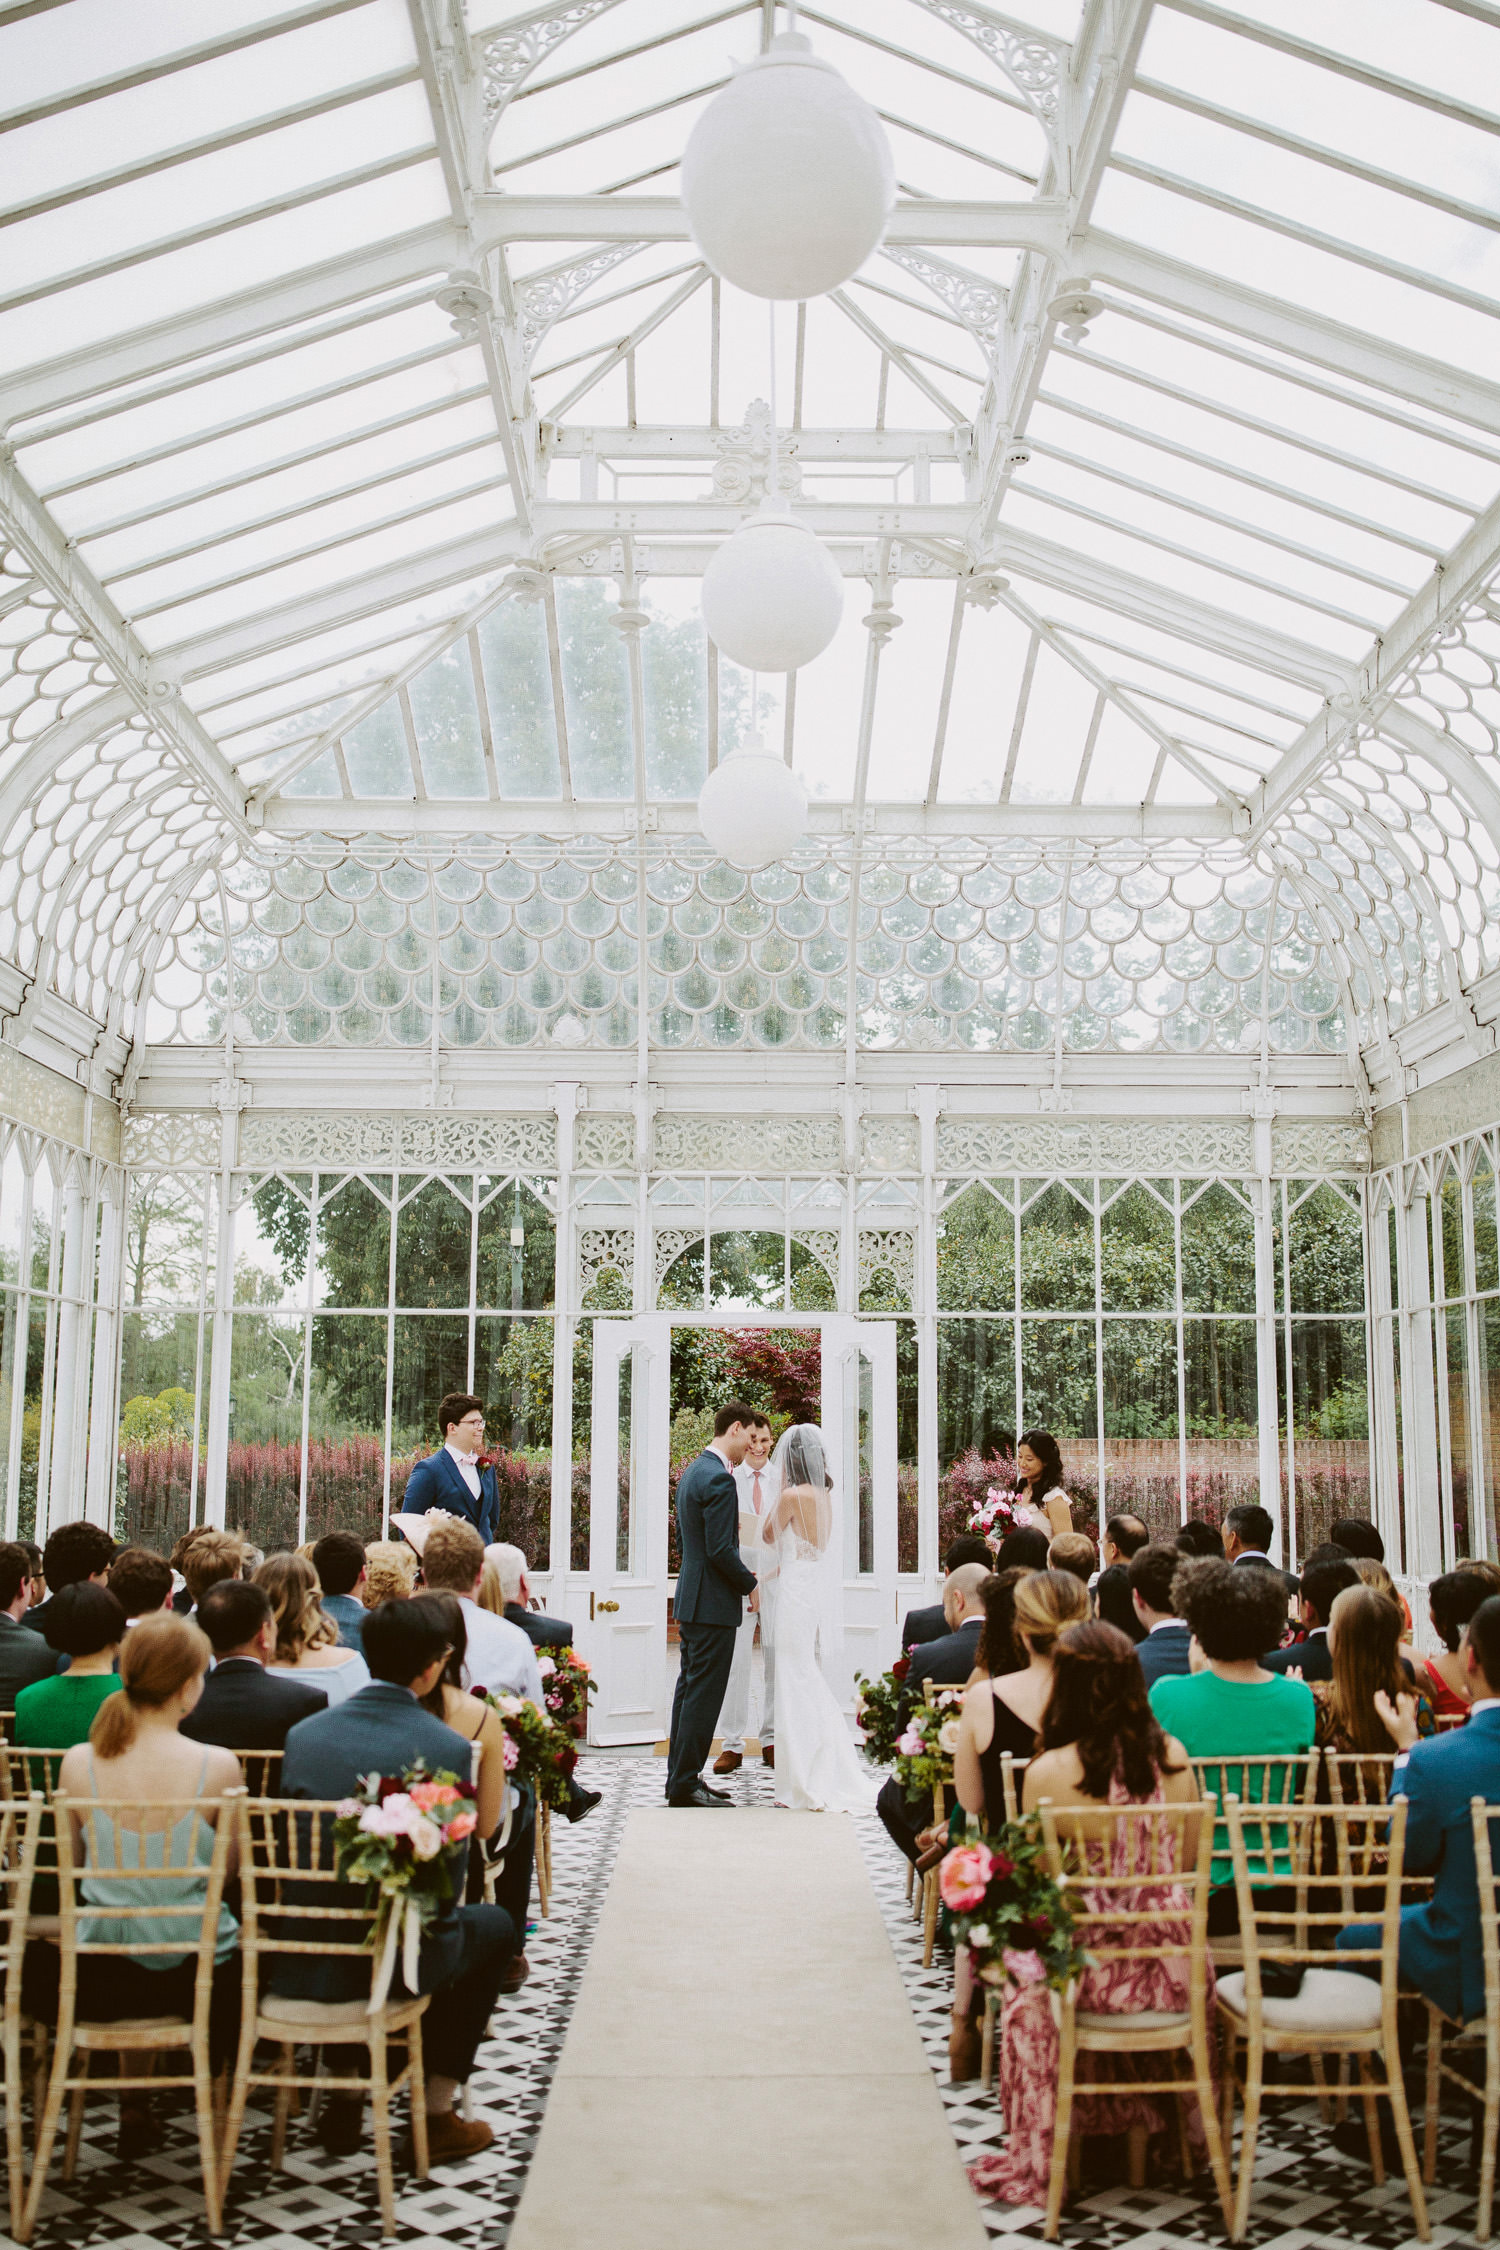 Horniman museum wedding ceremony in the glass house